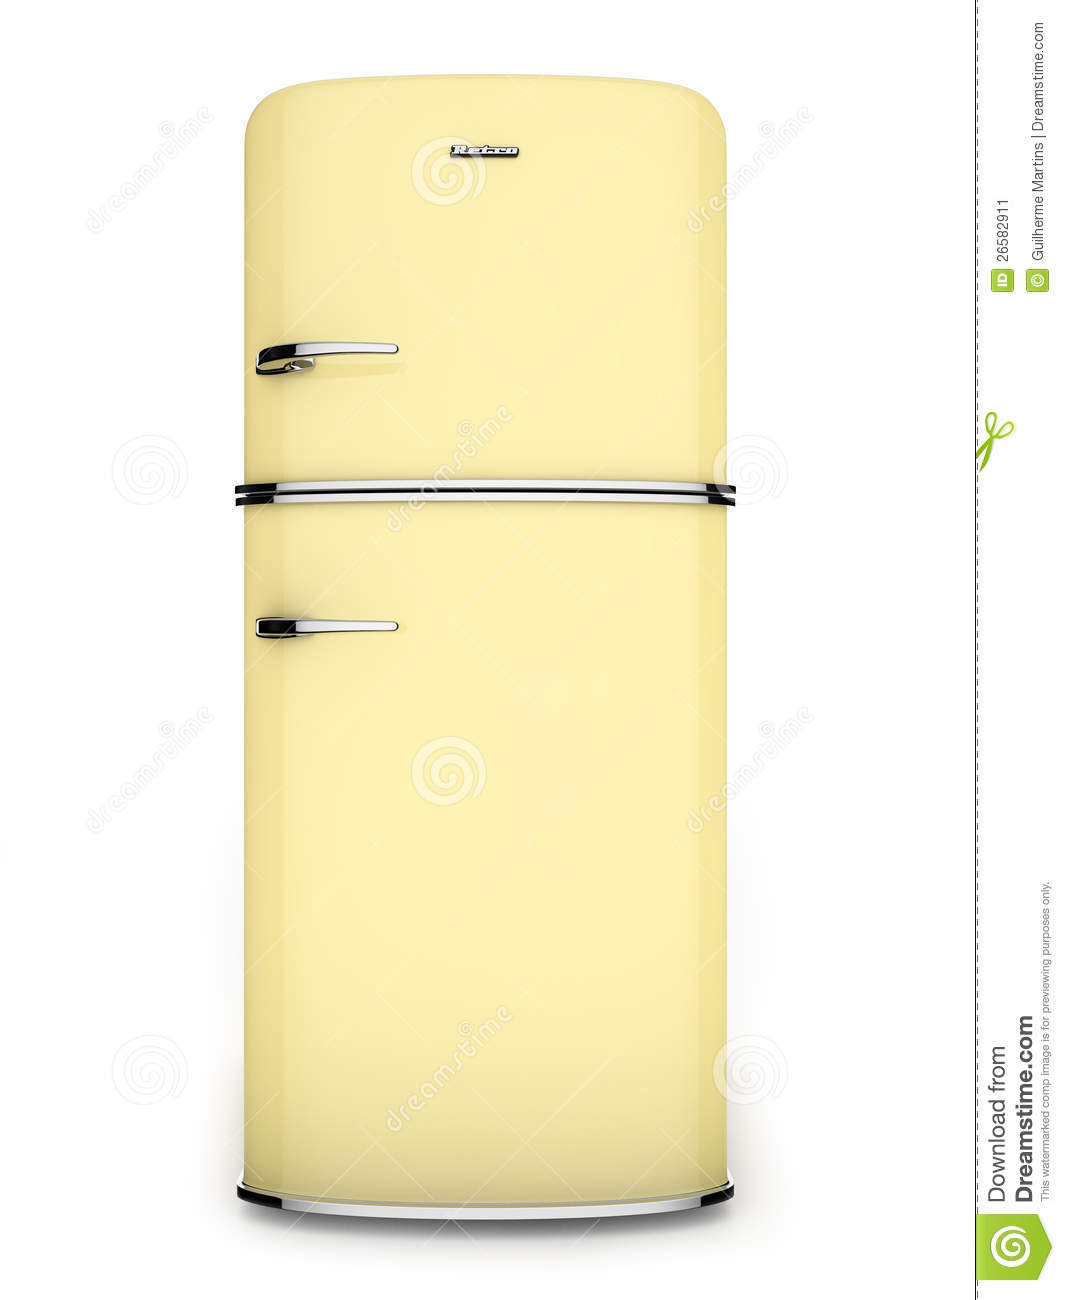 Yellow Fridge Freezer Yellow Retro Refrigerator Front View Stock Illustration